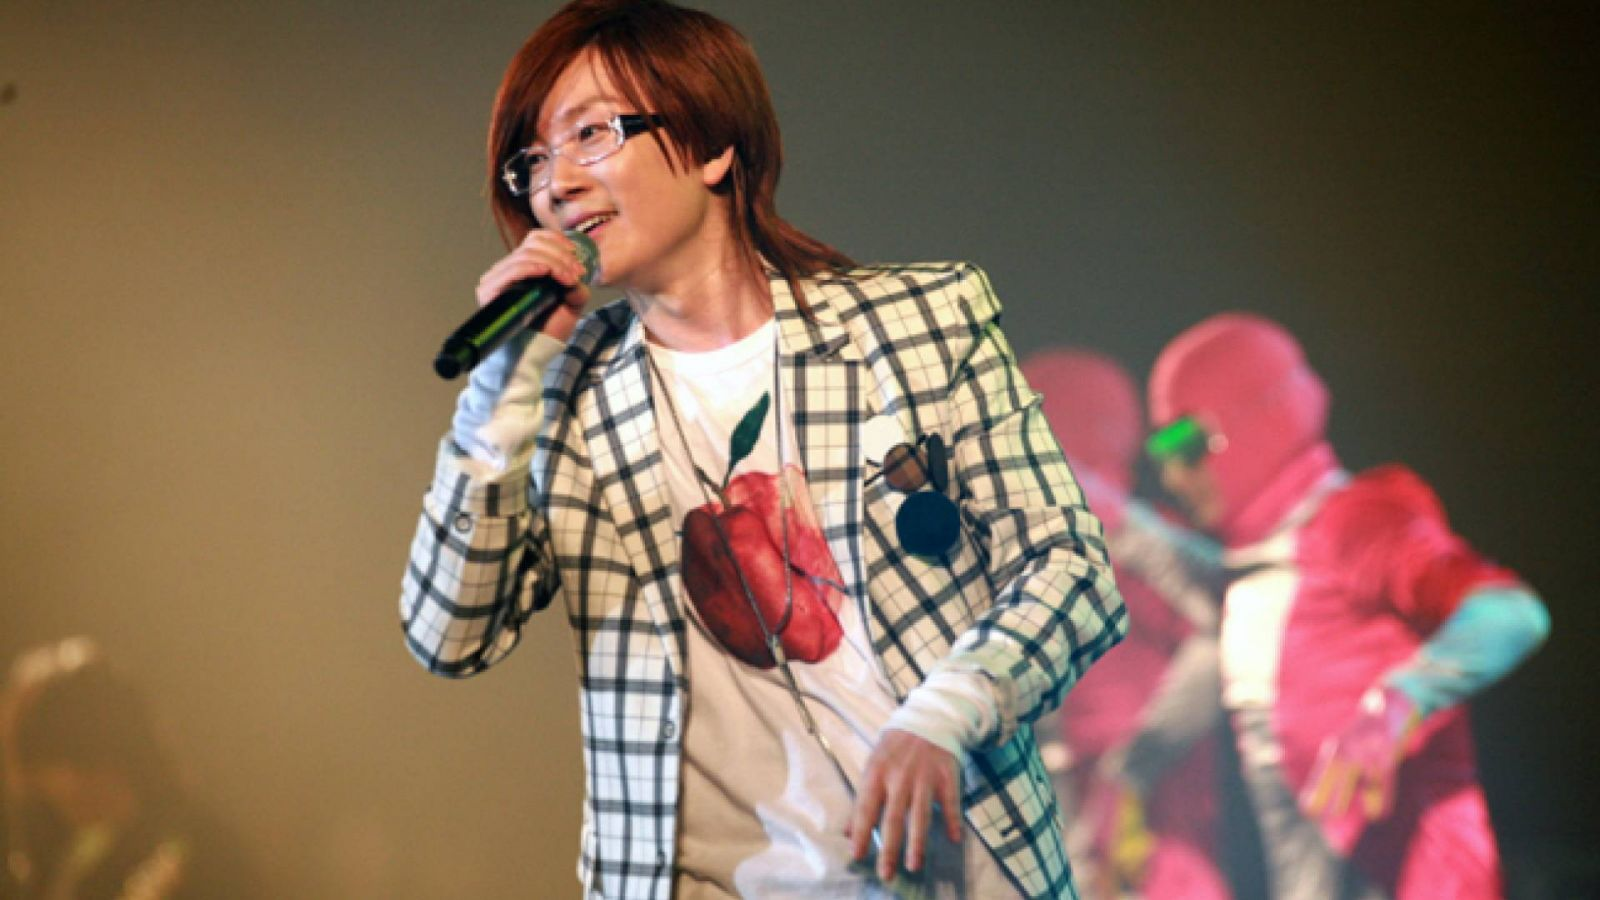 Live Report do Show de Lançamento do 2º Single de Seo Taiji, Wormhole © Seotaiji Company